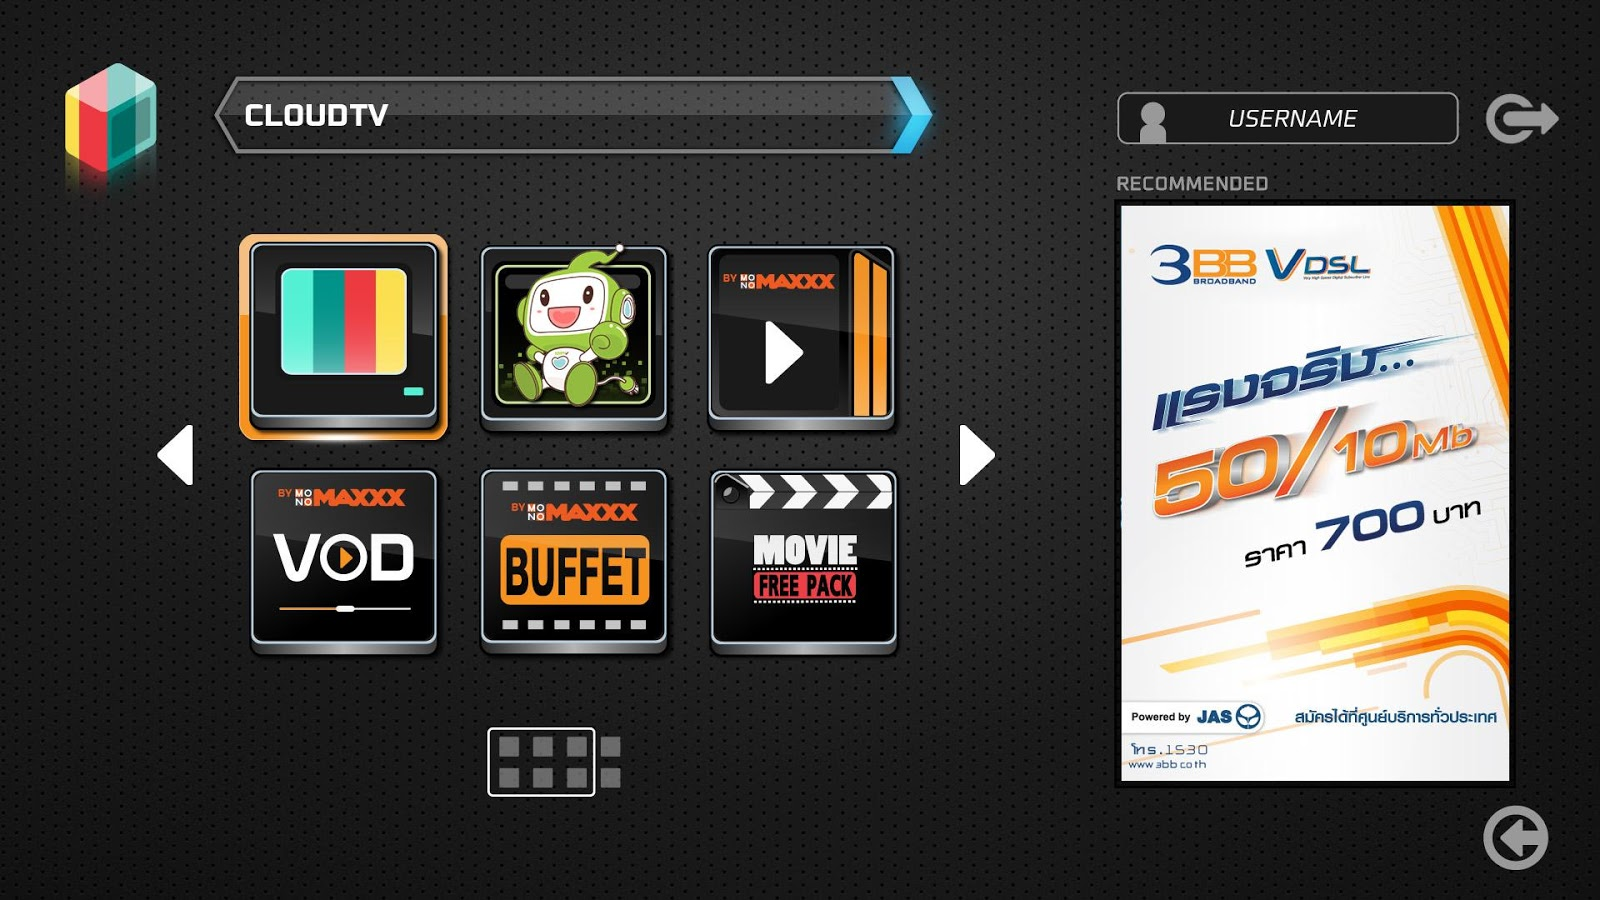 3bb cloudtv androidbox android apps on google play